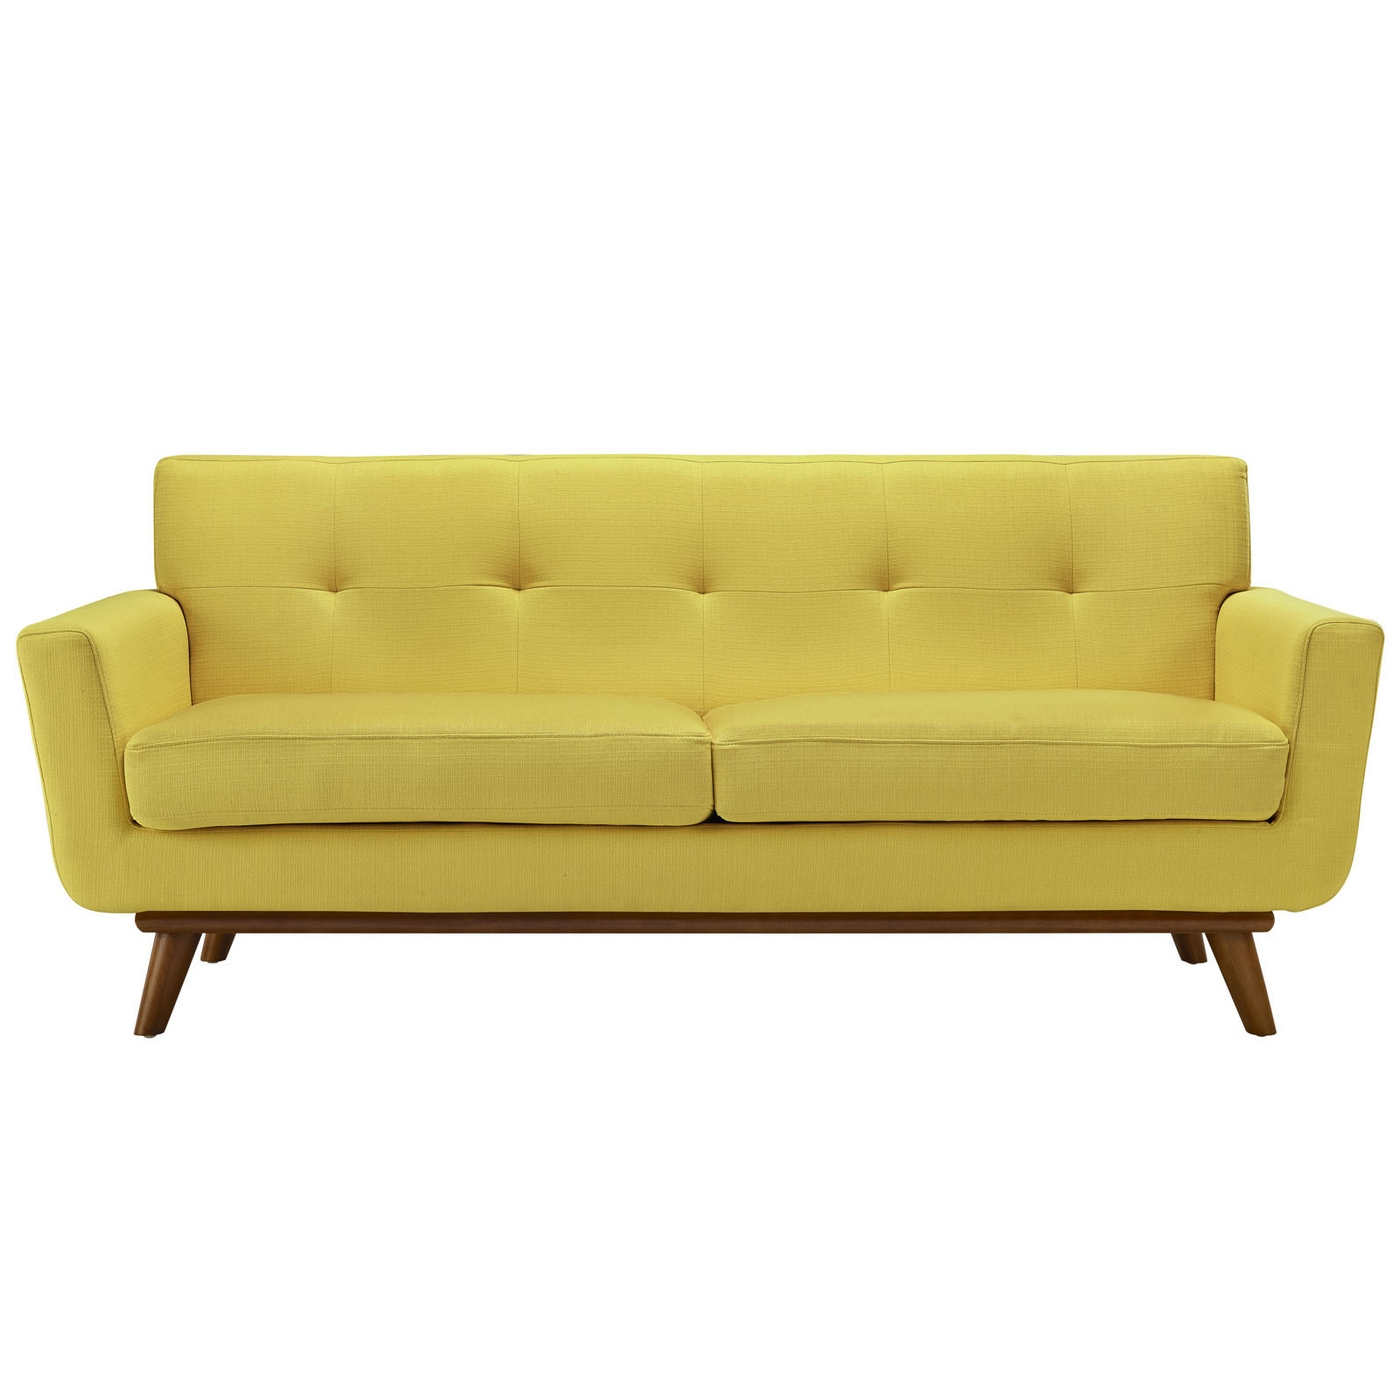 Engage Contemporary Upholstered Loveseat With Wooden Legs Sunny